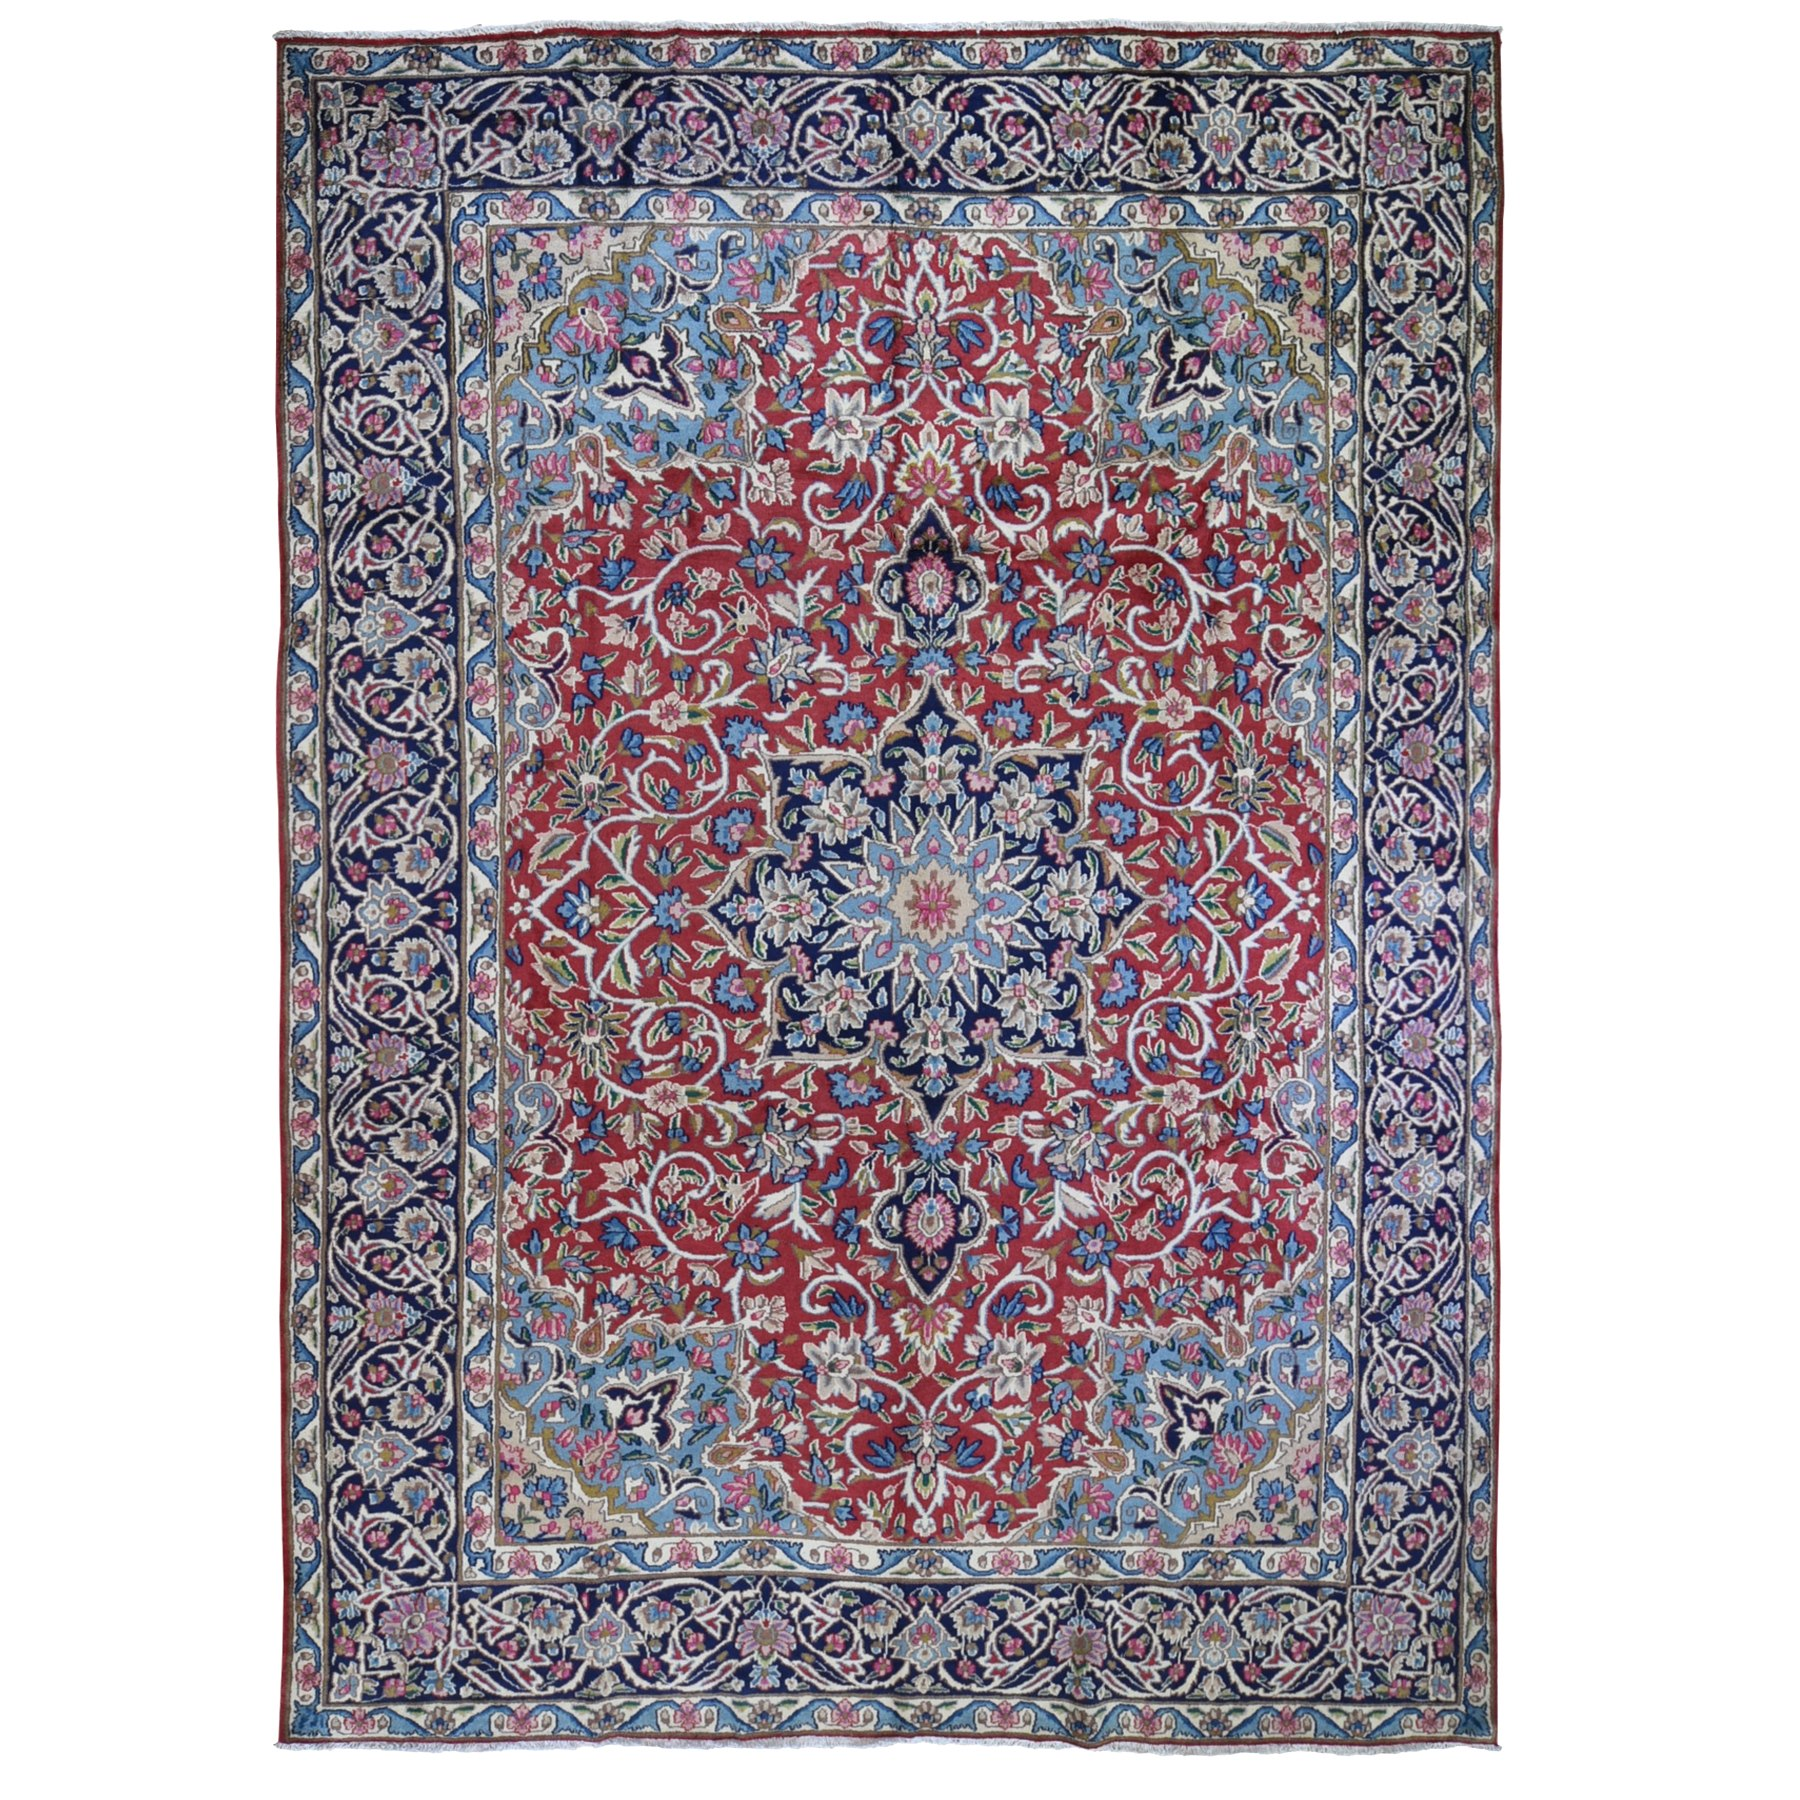 "8'7""x12'2"" Semi Antique Persian Kerman Medallion Pure Wool Full Pile Excellent Condition Hand Woven Oriental Rug"